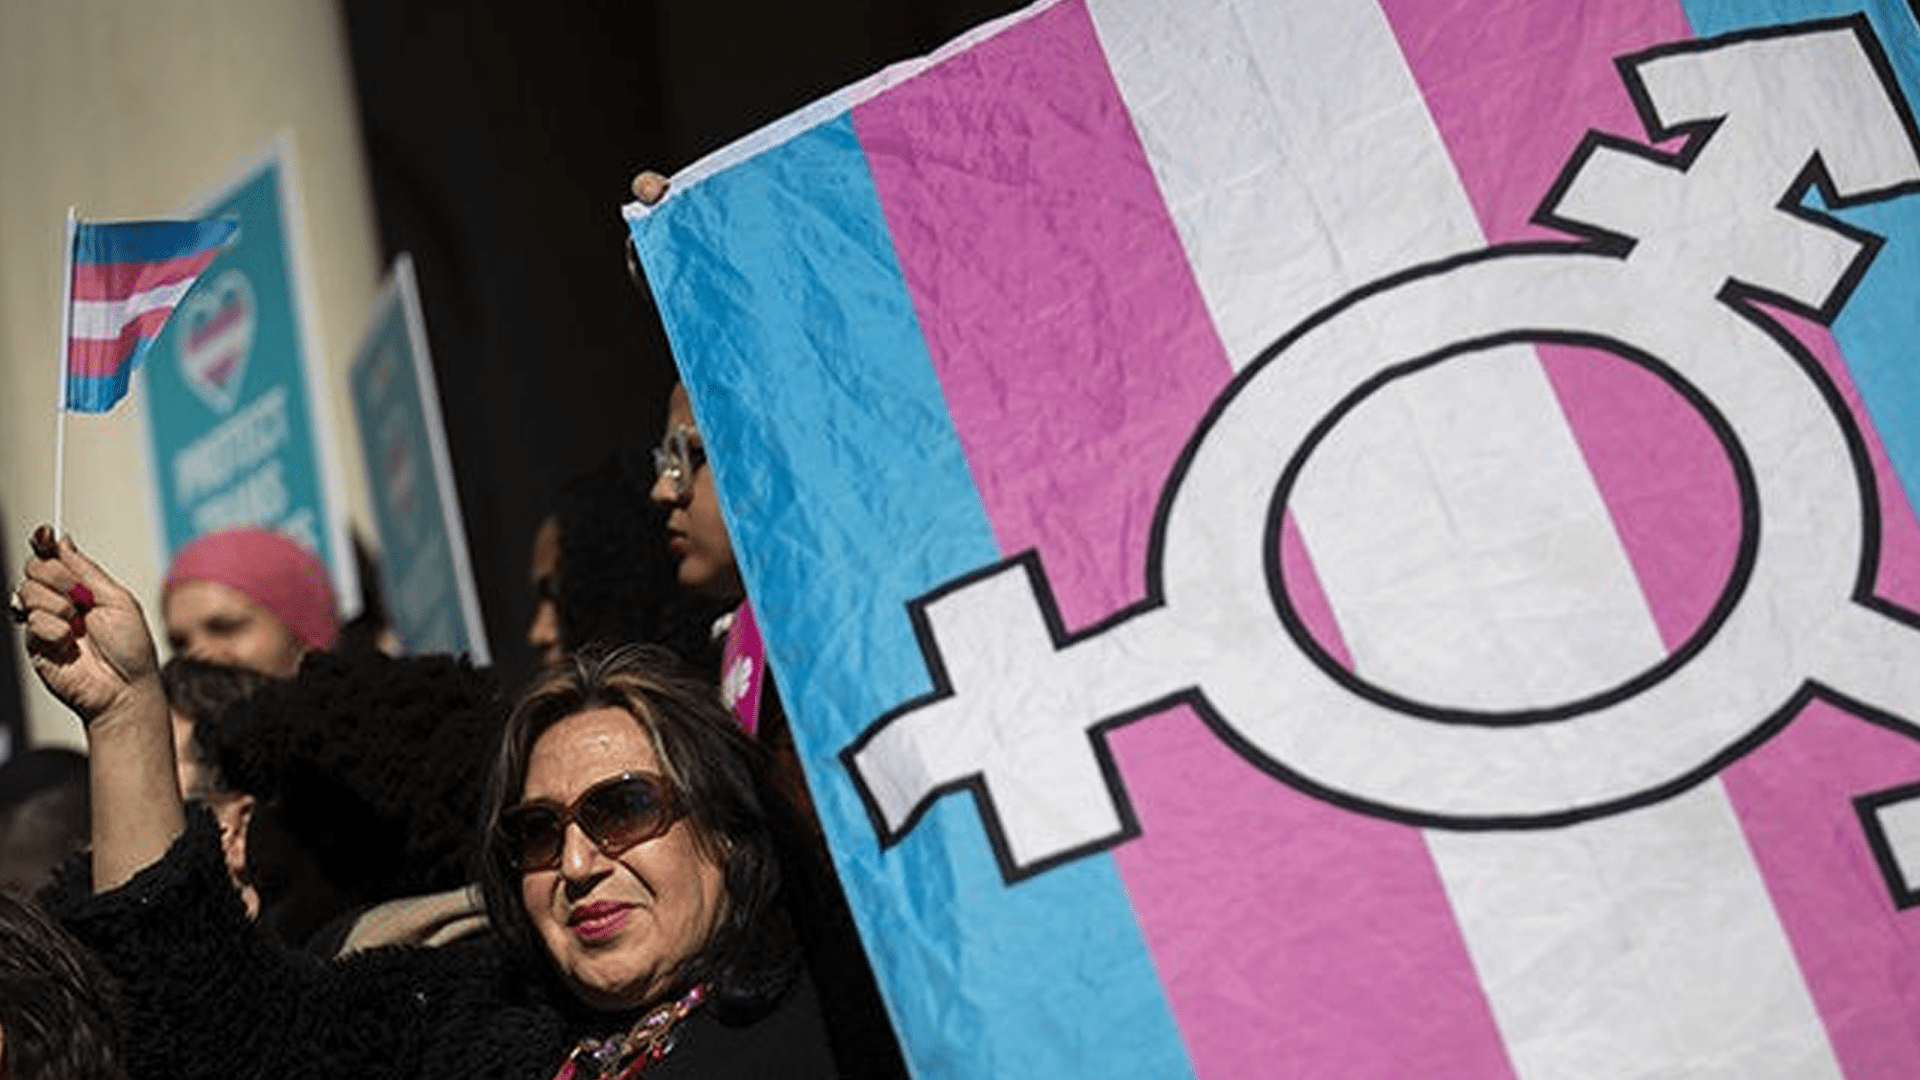 Study Corrected: Transgender Hormones and Surgeries Offer No Mental Health Benefits